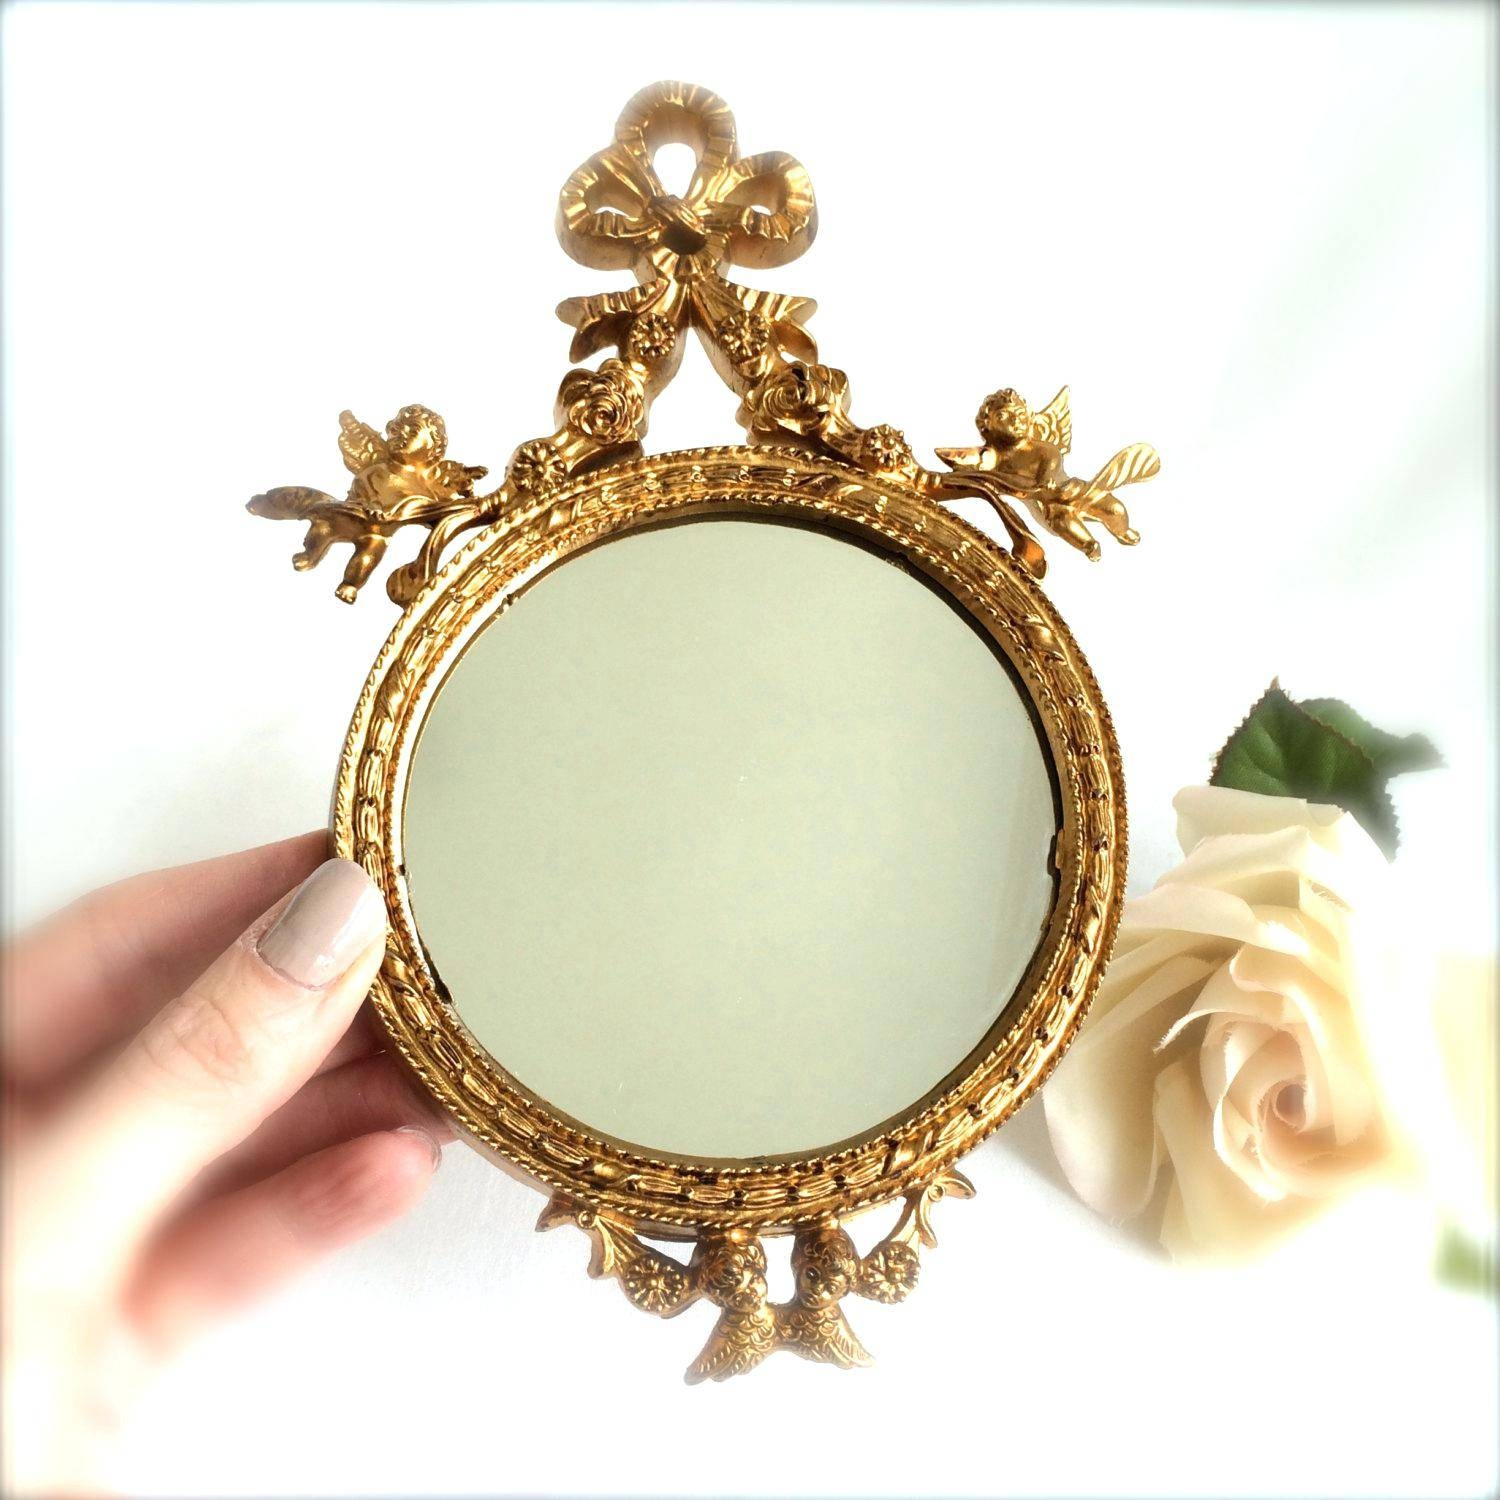 11 H Mirror Gold Oval Italian Vintage Decorative Upcycle Ornate within Ornate Wall Mirrors (Image 1 of 25)